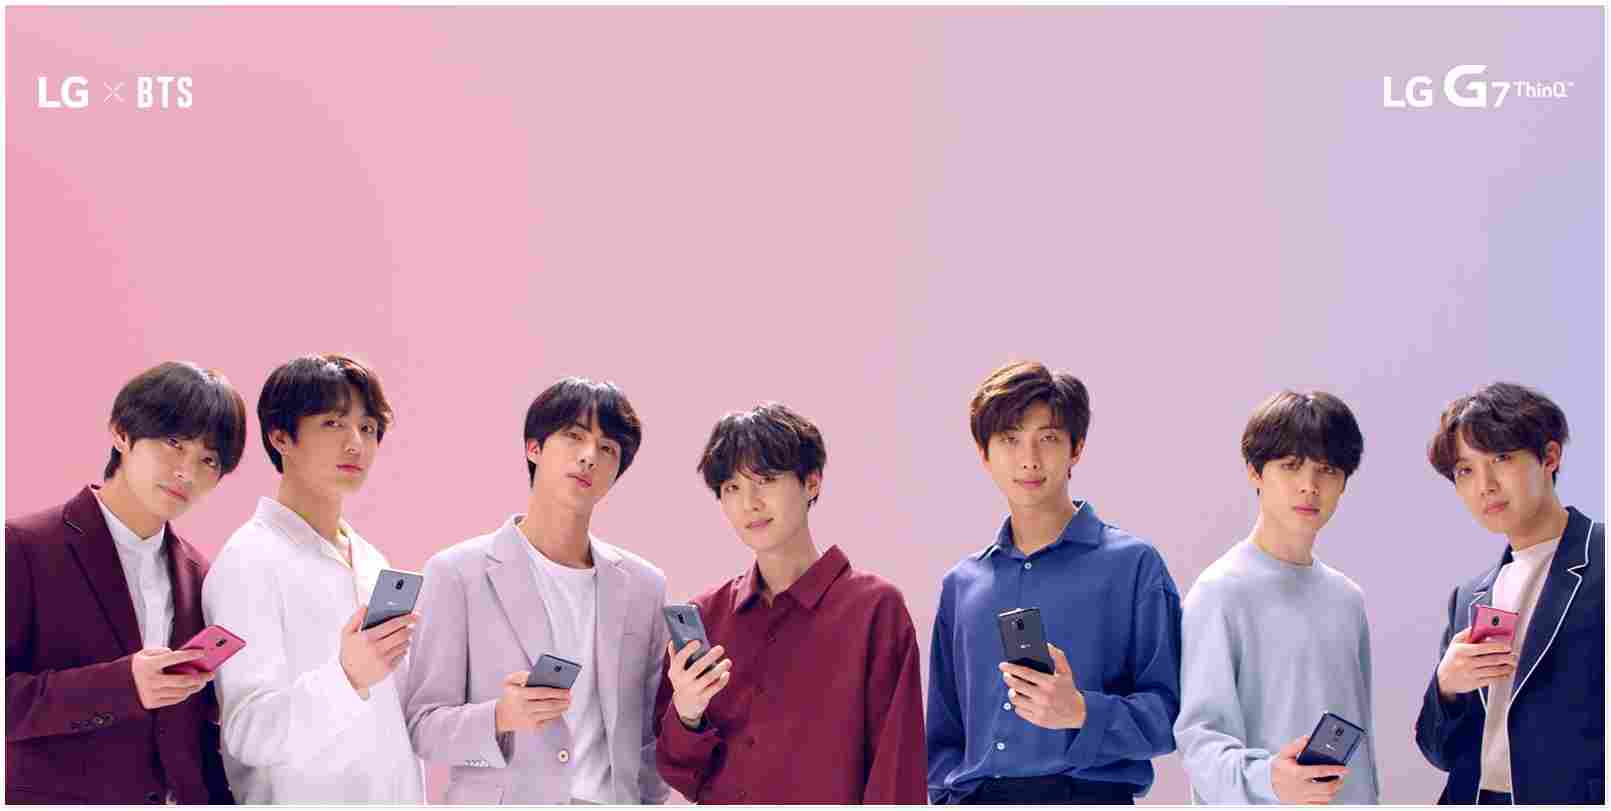 10 Bts Desktop 2020 Wallpapers On Wallpapersafari Explore and download tons of high quality cute wallpapers all for free! 10 bts desktop 2020 wallpapers on